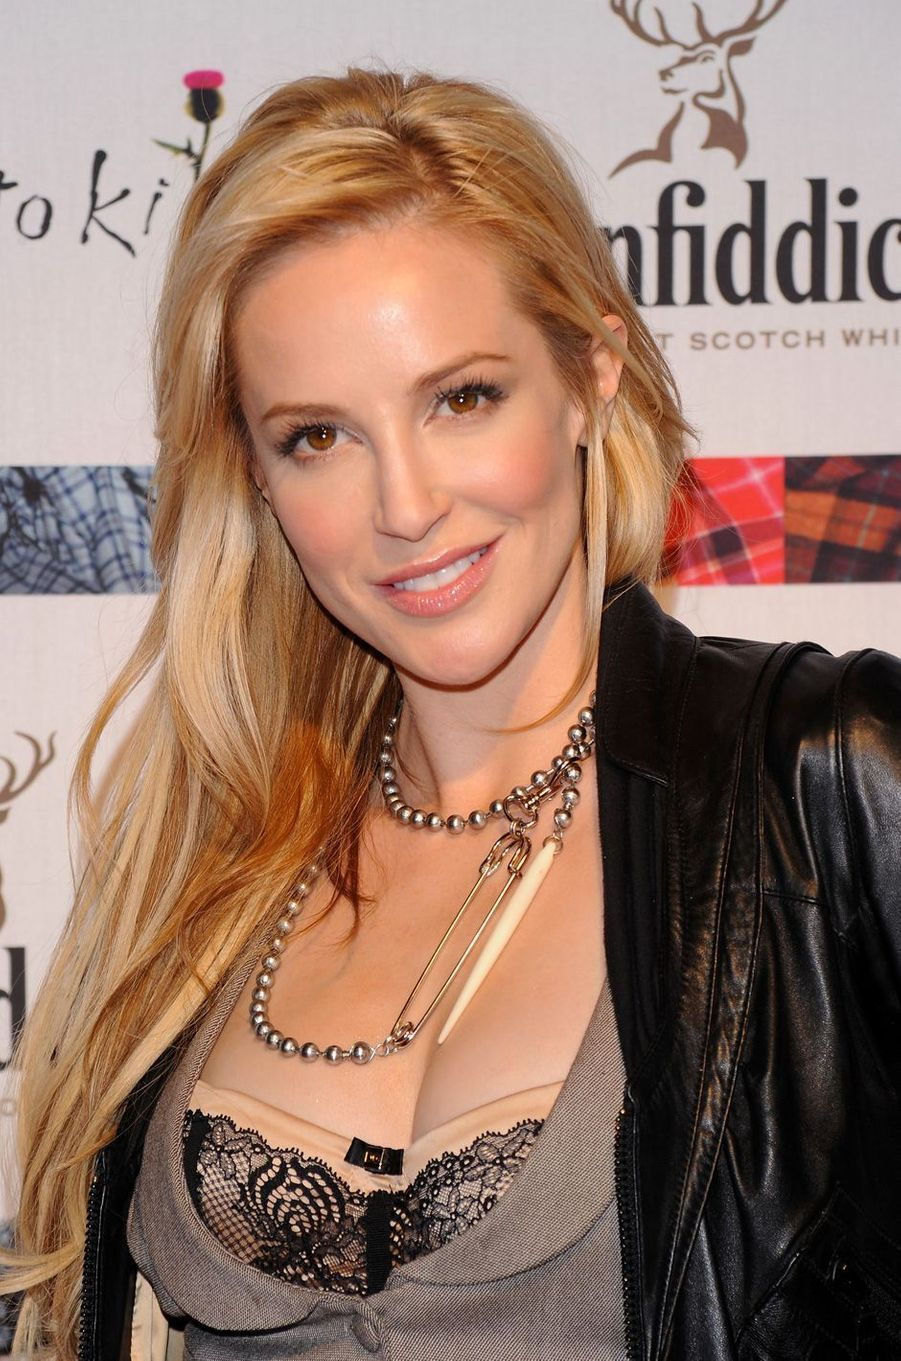 Louise Linton à l'événement «Dressed To Kilt» à New York, le 5 avril 2010.